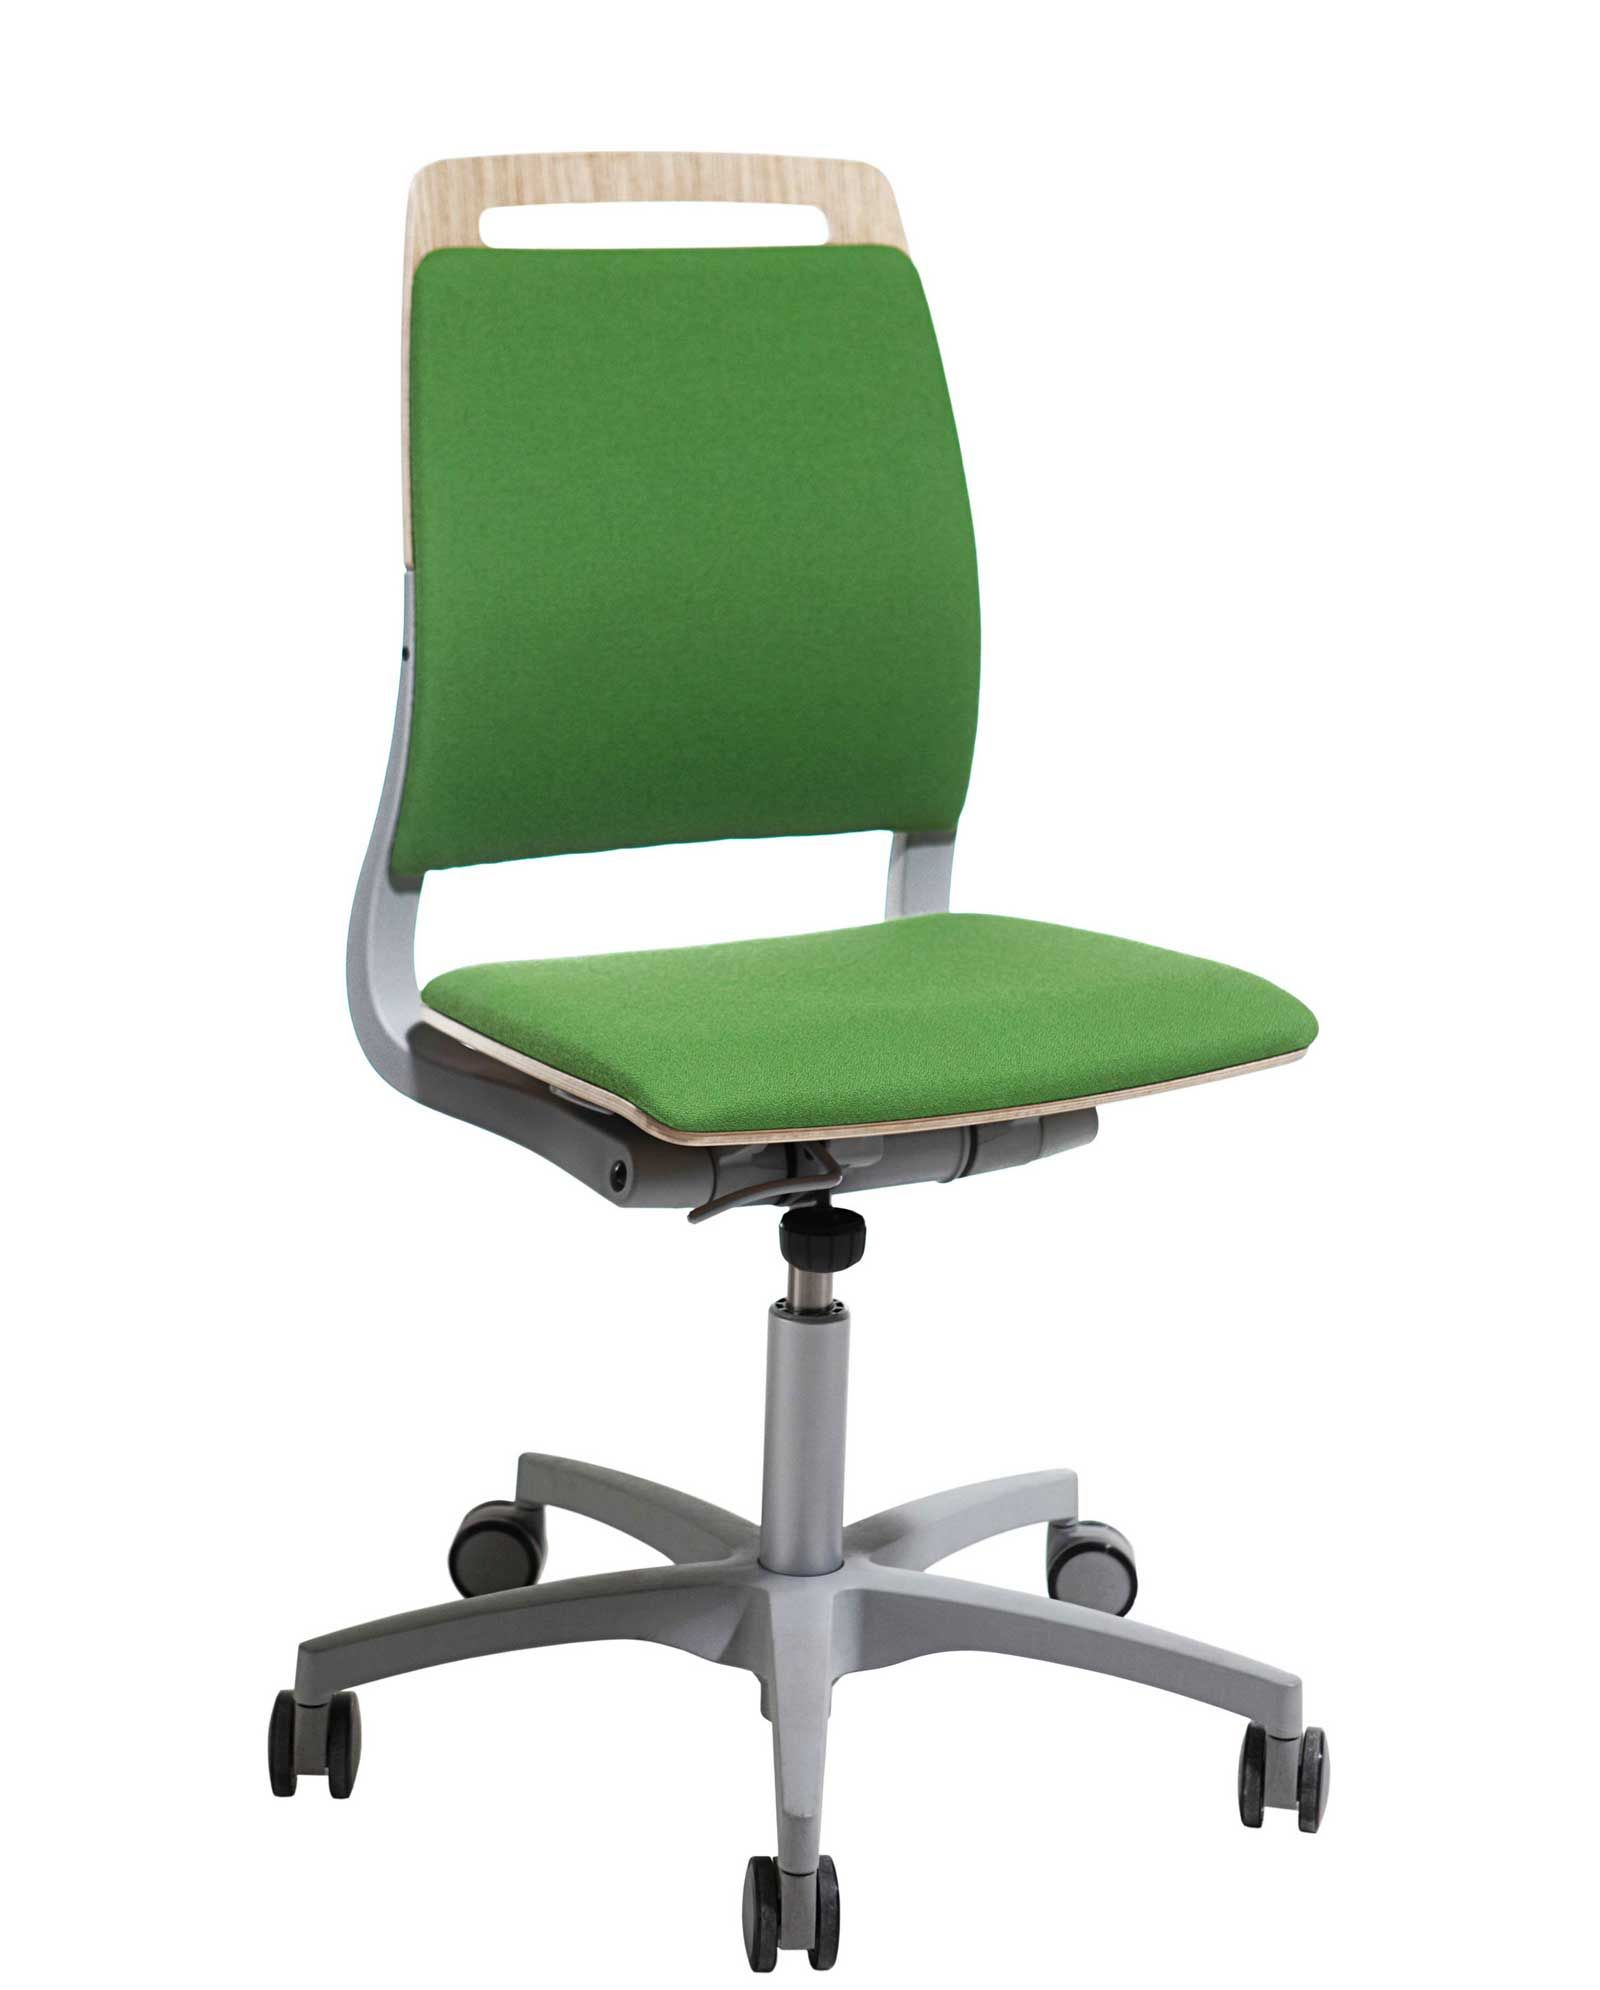 Adjustable Back Green Armless Office Chairs Chair Office Chair Rolling Office Chair